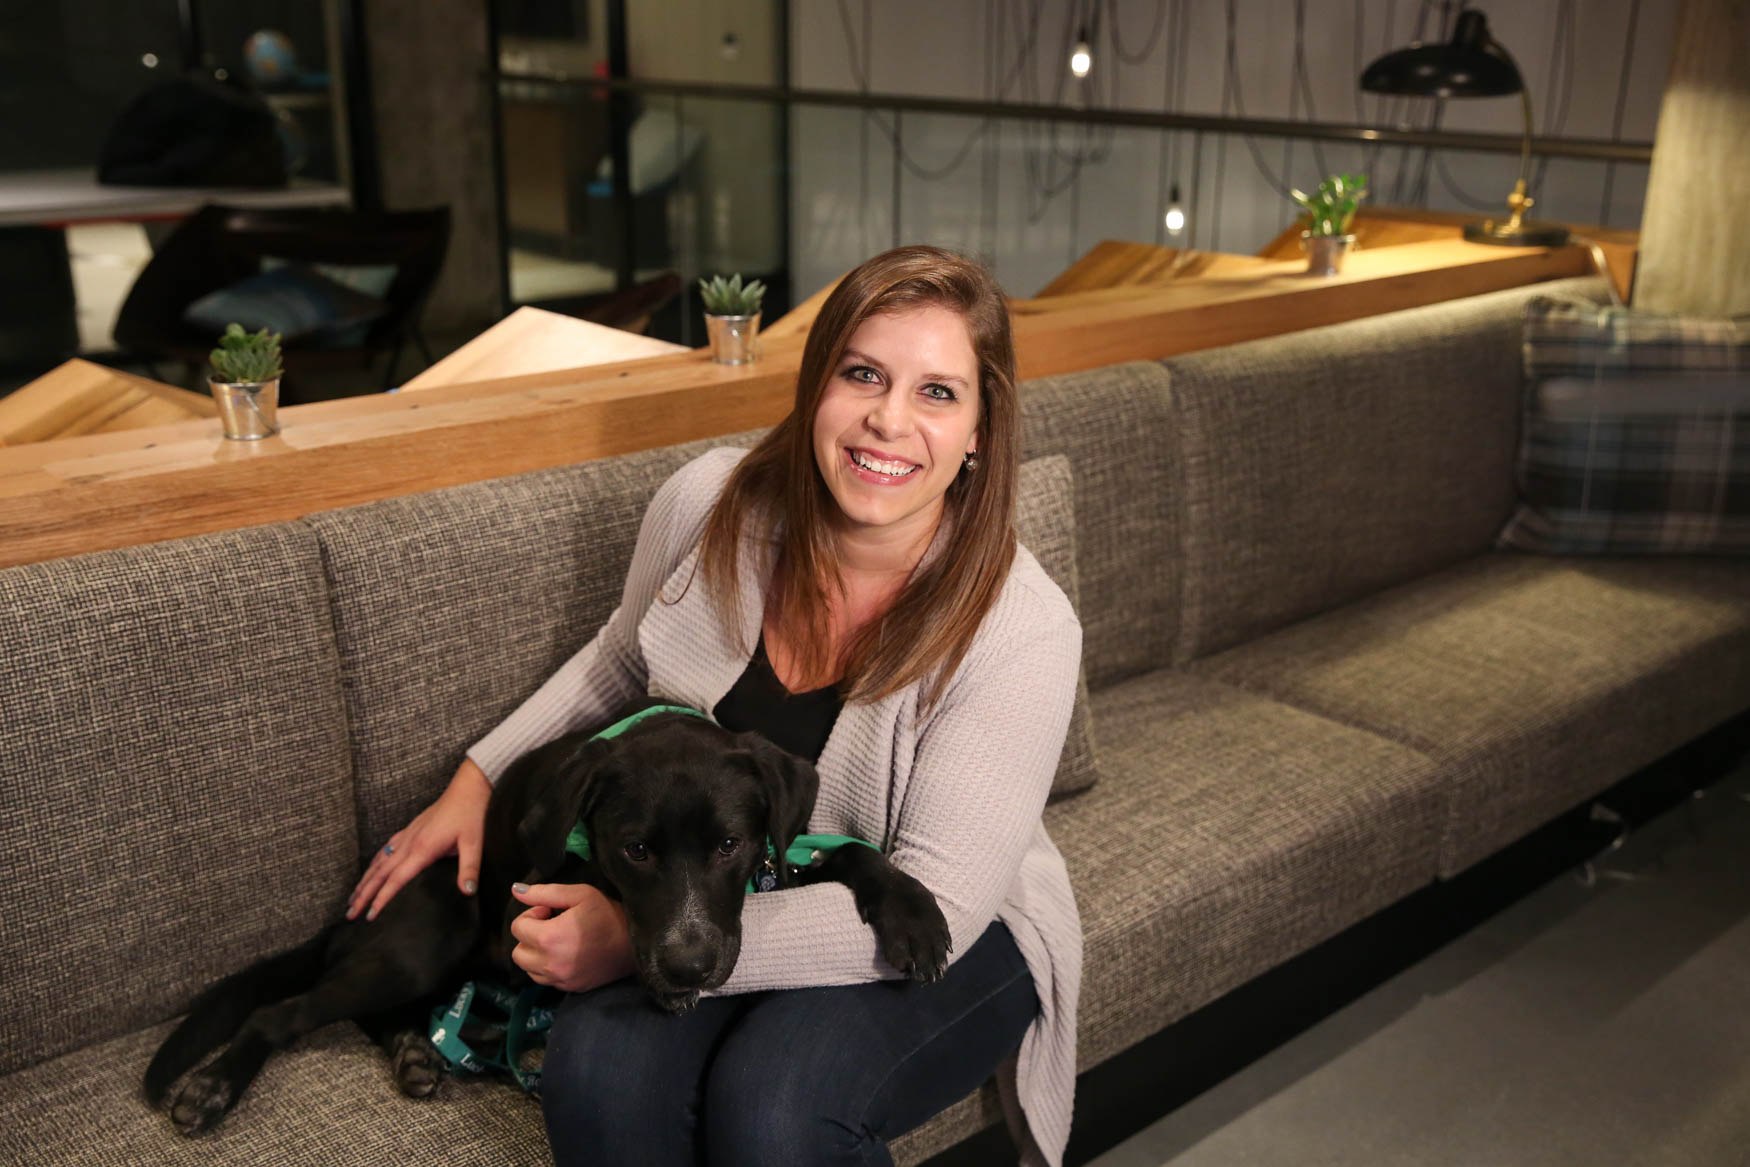 Meet Nelson and Lynette, a 1-year-old Lab mix and a 28-year-old human respectively. Photo location: Moxy Washington, D.C. Downtown (Image: Amanda Andrade-Rhoades/ DC Refined)